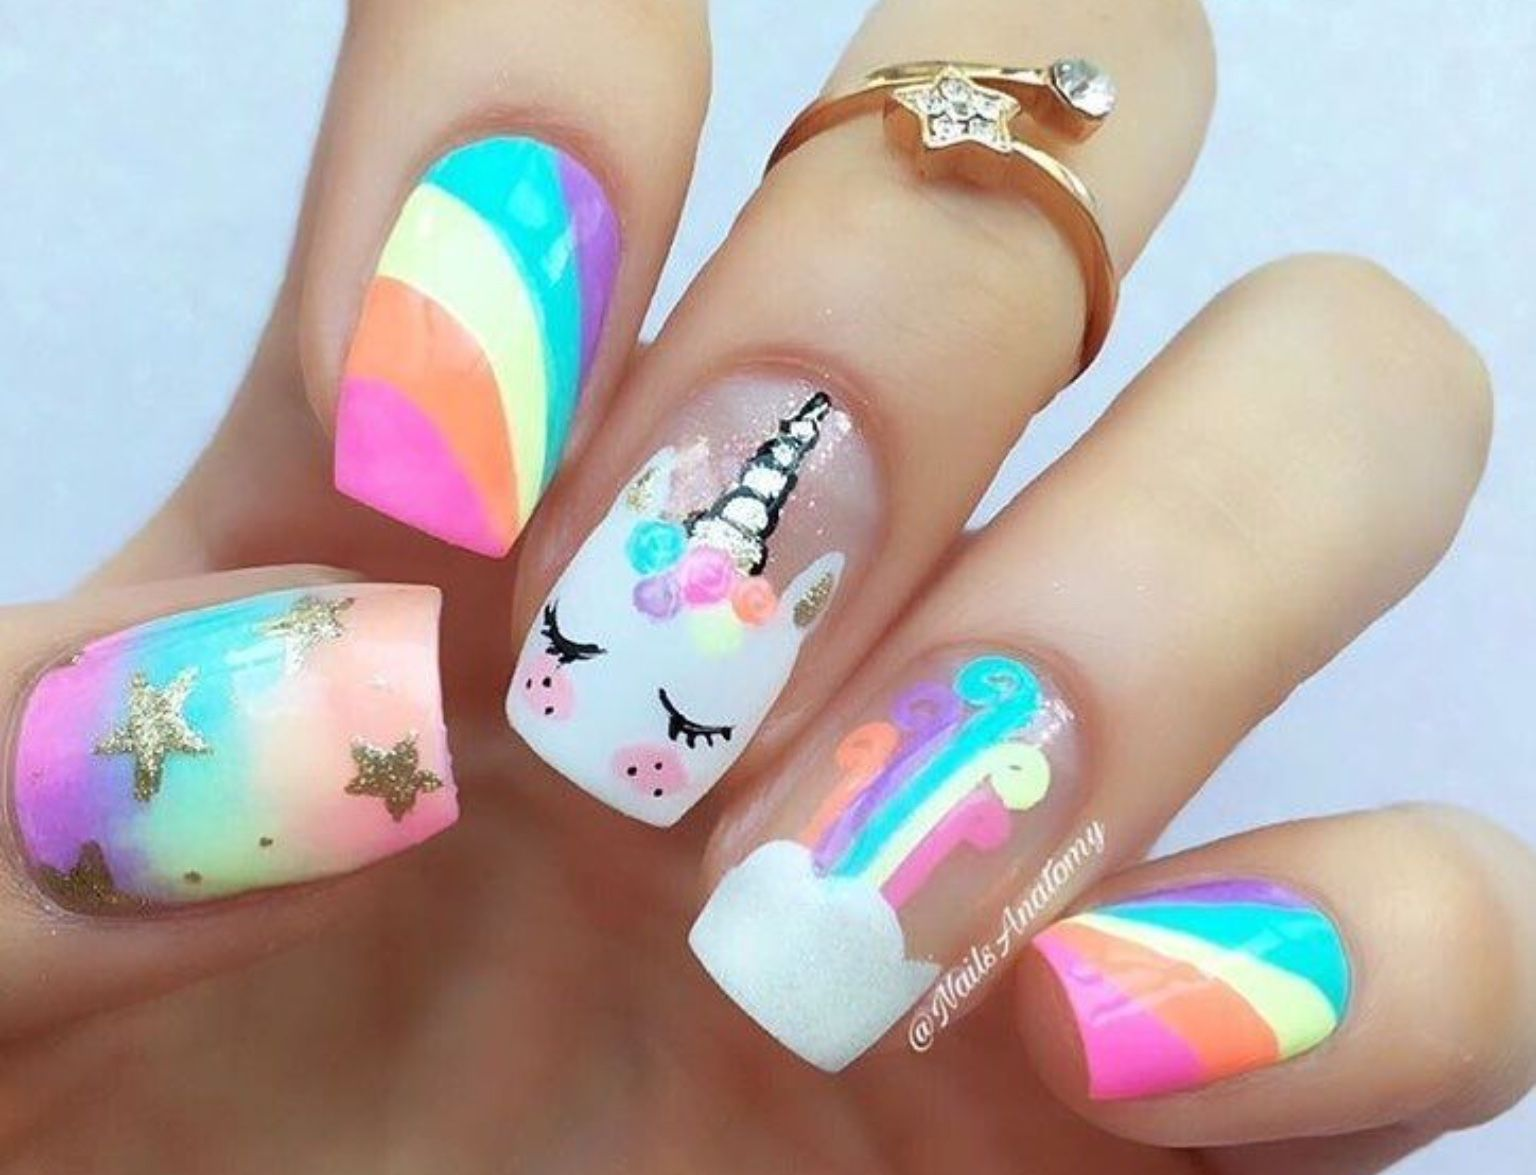 Pin by Isabella Nightingale on The best | Pinterest | Beauty nails ...